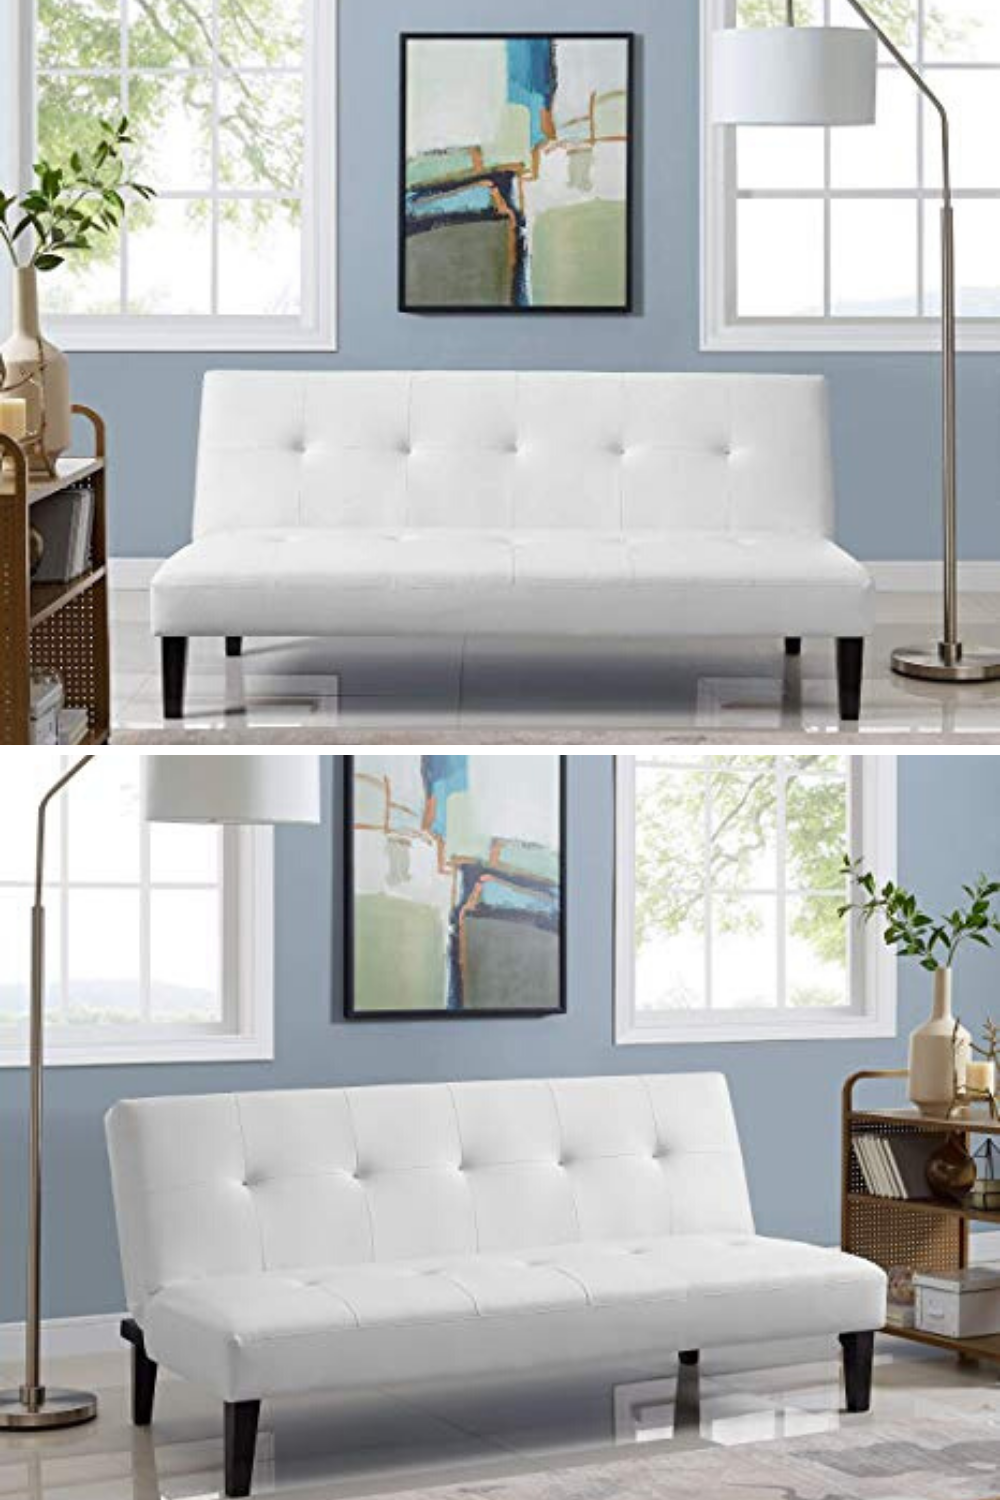 10 Futon Couch Alternatives For Every Budget In 2020 Living Room Sets Furniture Couch Alternatives Fun Living Room Furniture